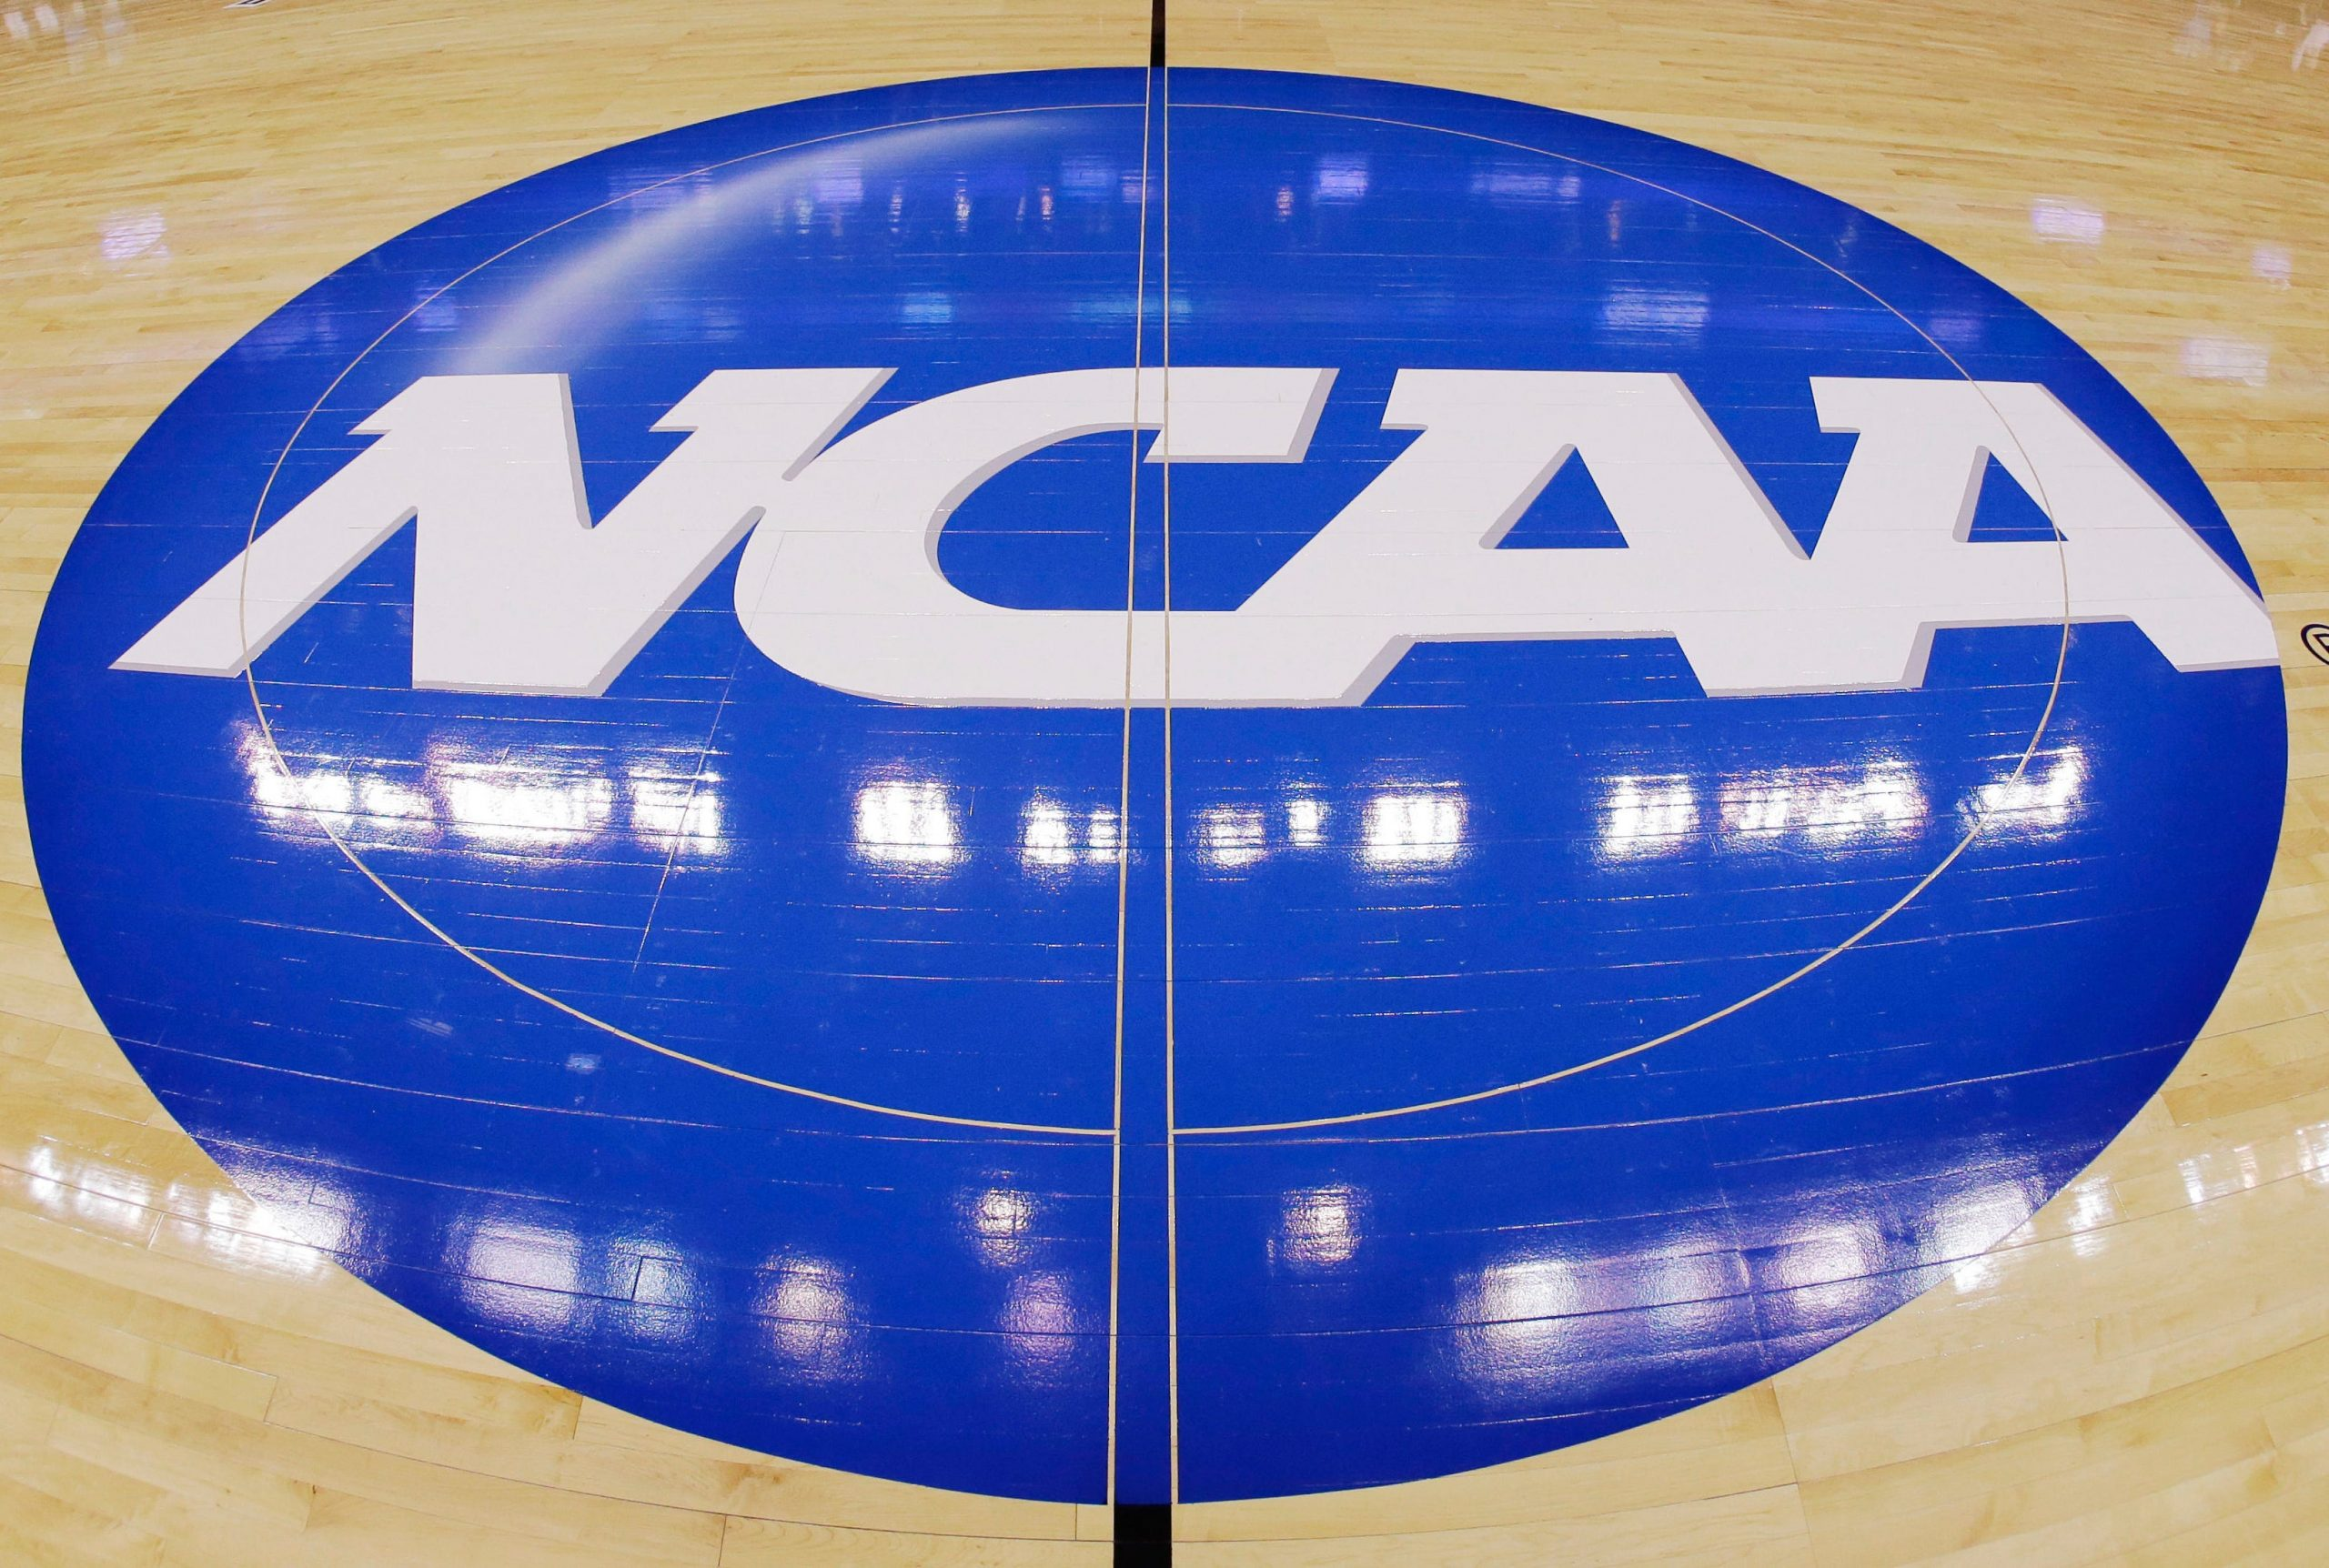 March Madness Cancelled As COVID-19 Forces NCAA To Shut All Tournaments